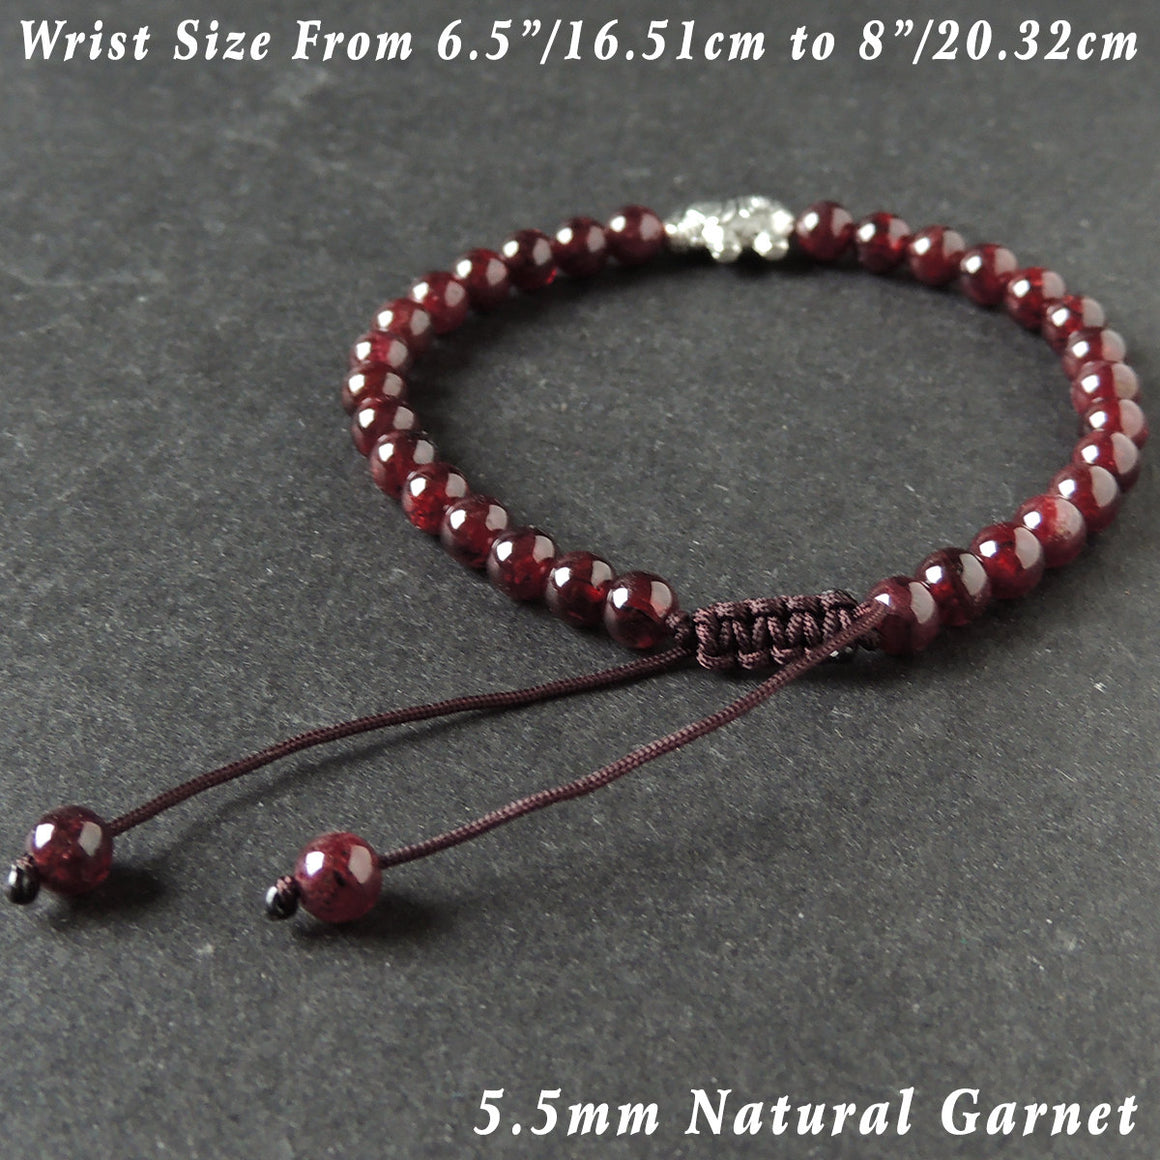 5.5mm Garnet Adjustable Braided Bracelet with Tibetan Silver Elephant Charm - Handmade by Gem & Silver TSB288